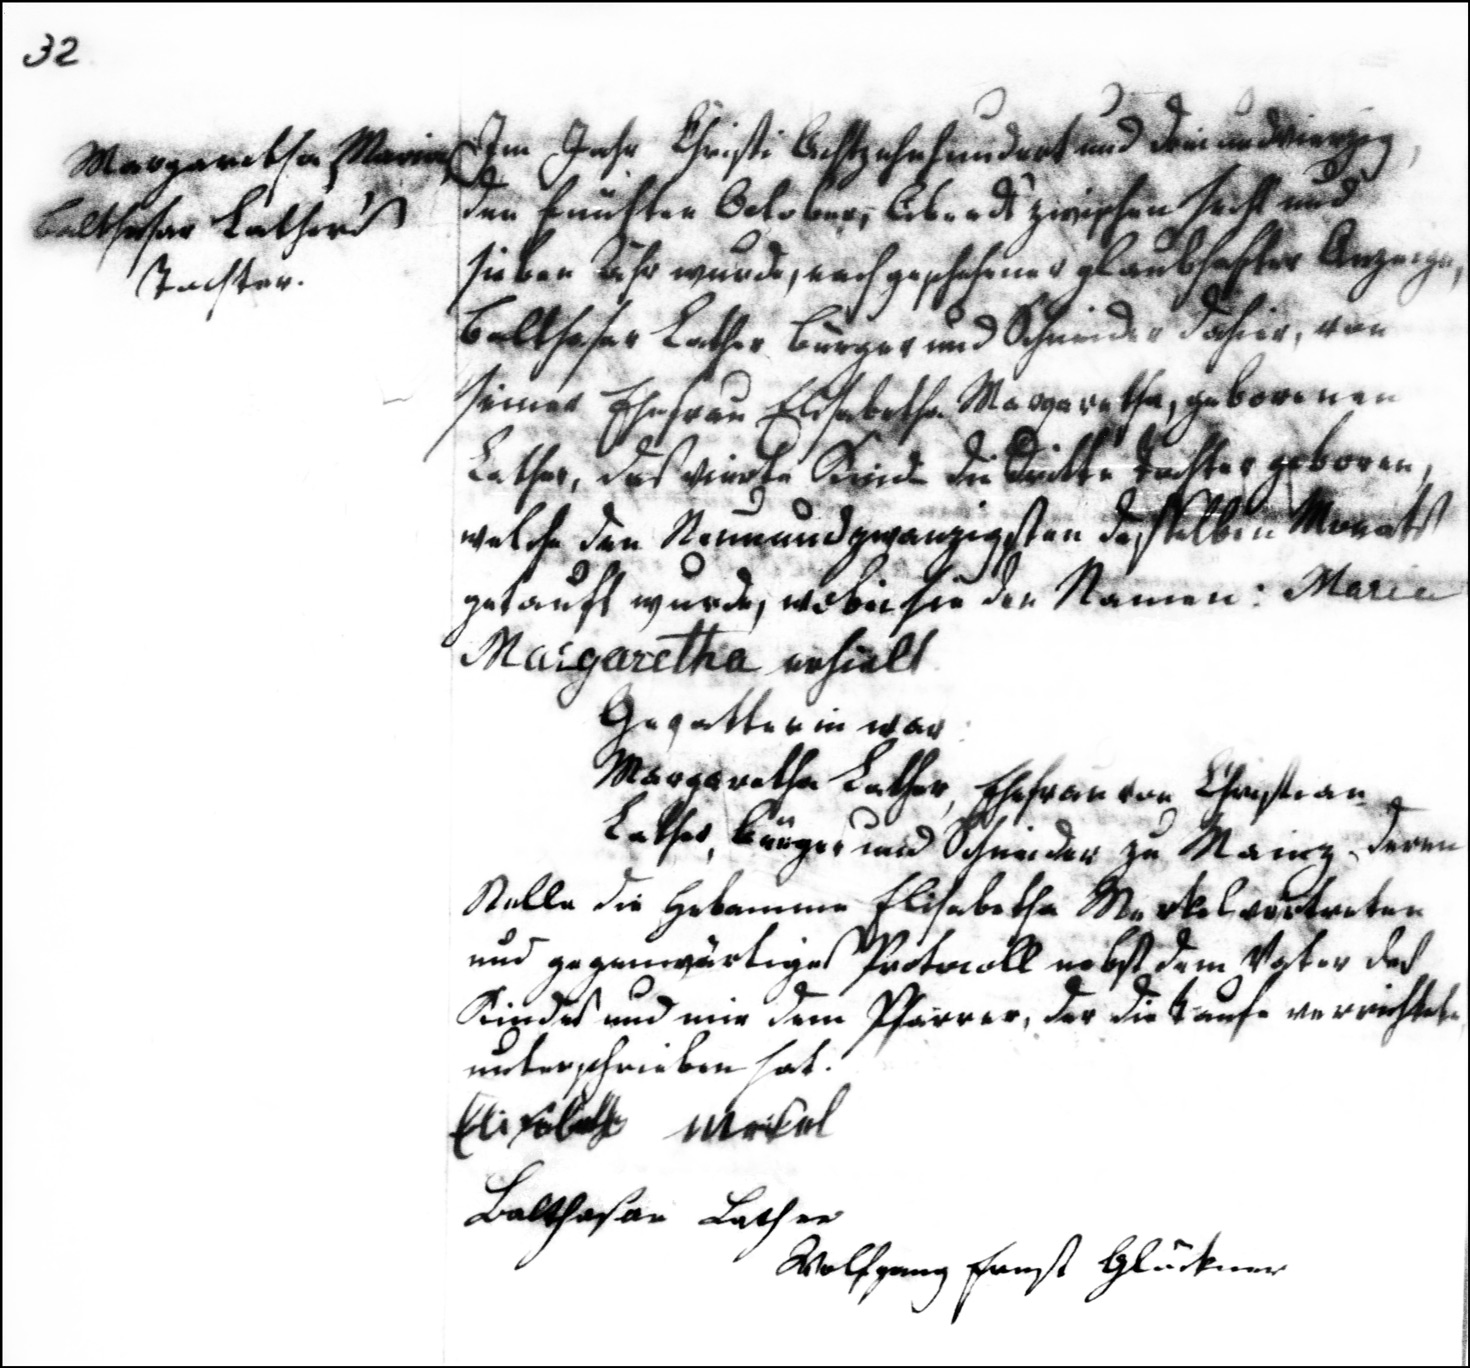 The Birth and Baptismal Record of Marie Margaretha Lather - 1843